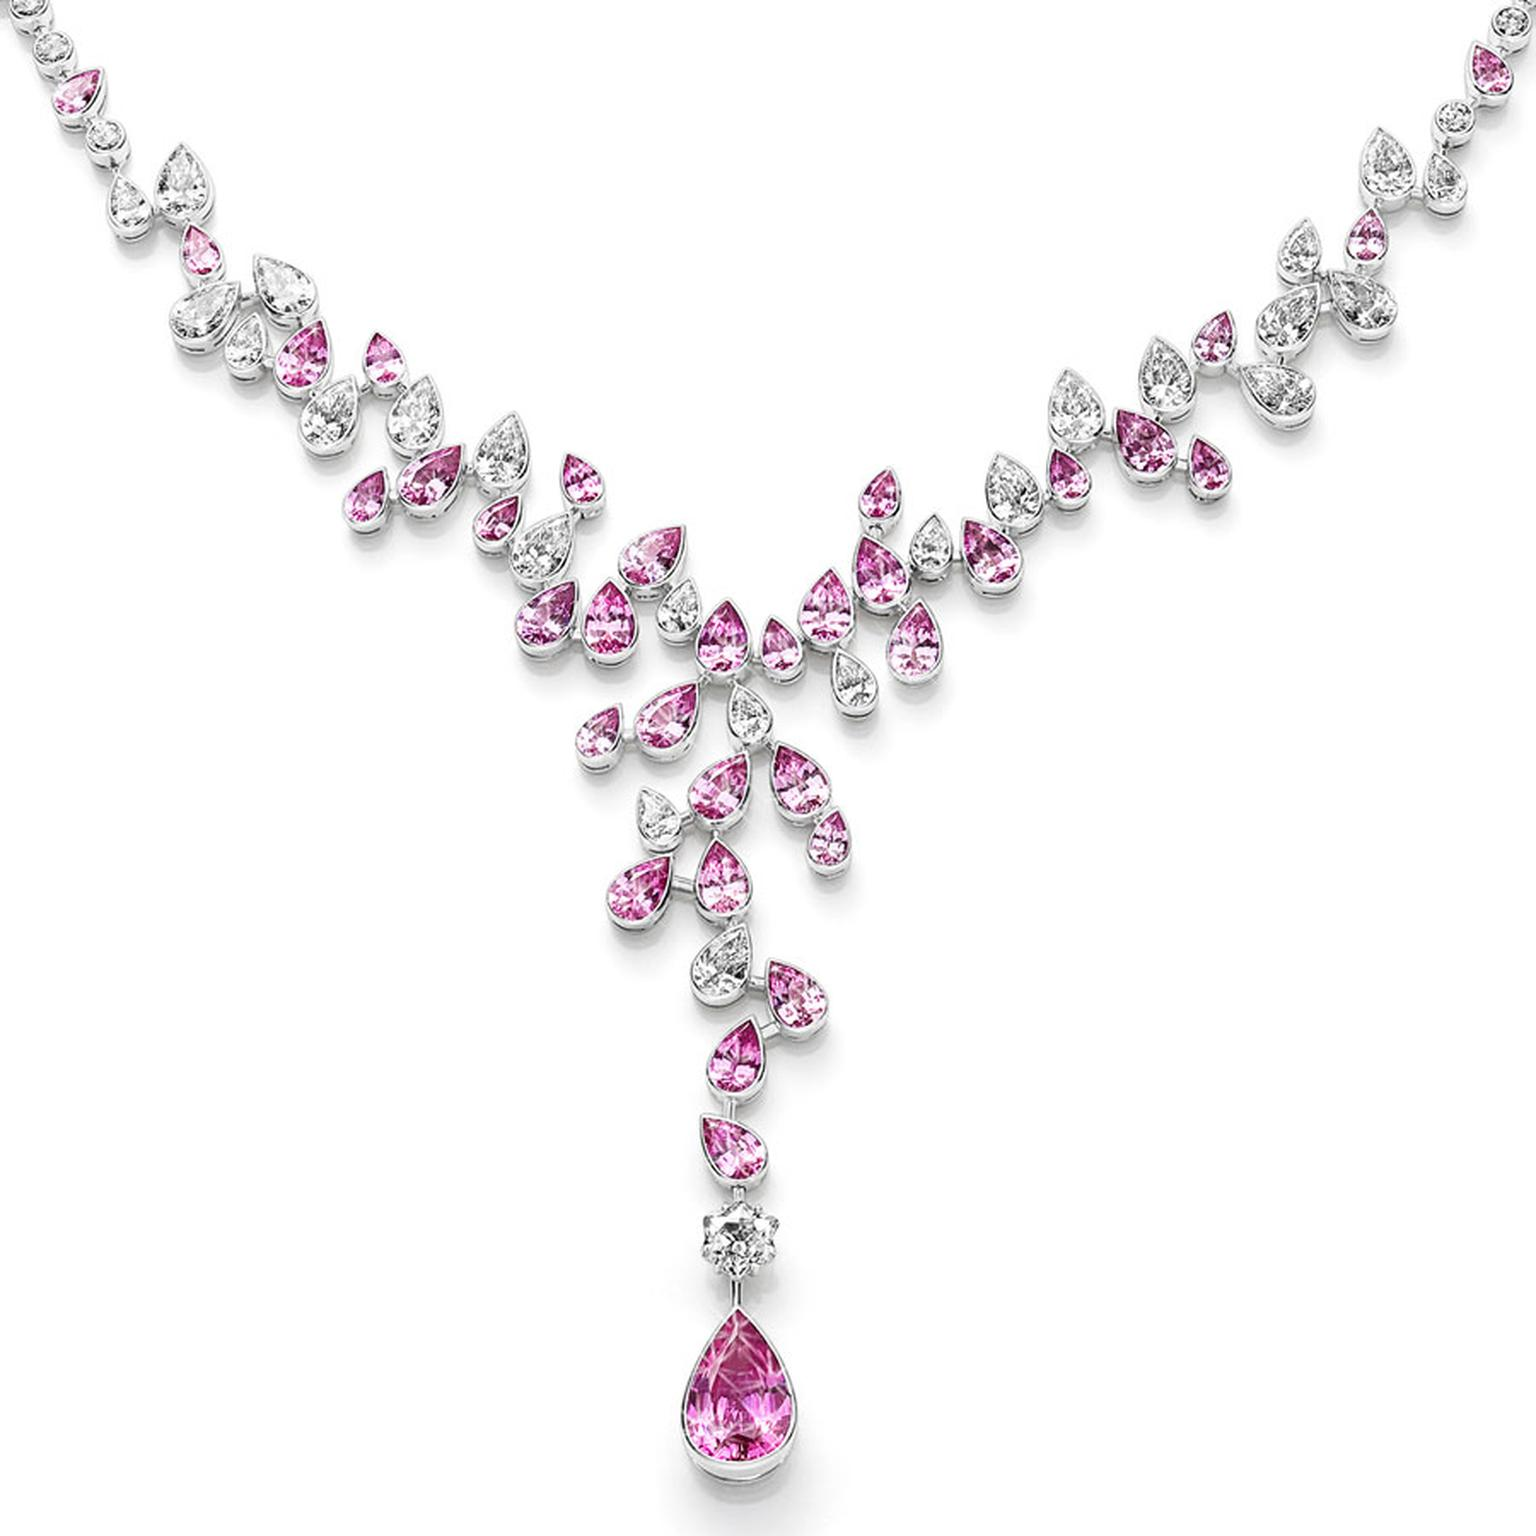 Montblanc_Collection_Princesse_Grace_de_Monaco_Haute_Joaillerie_Necklace